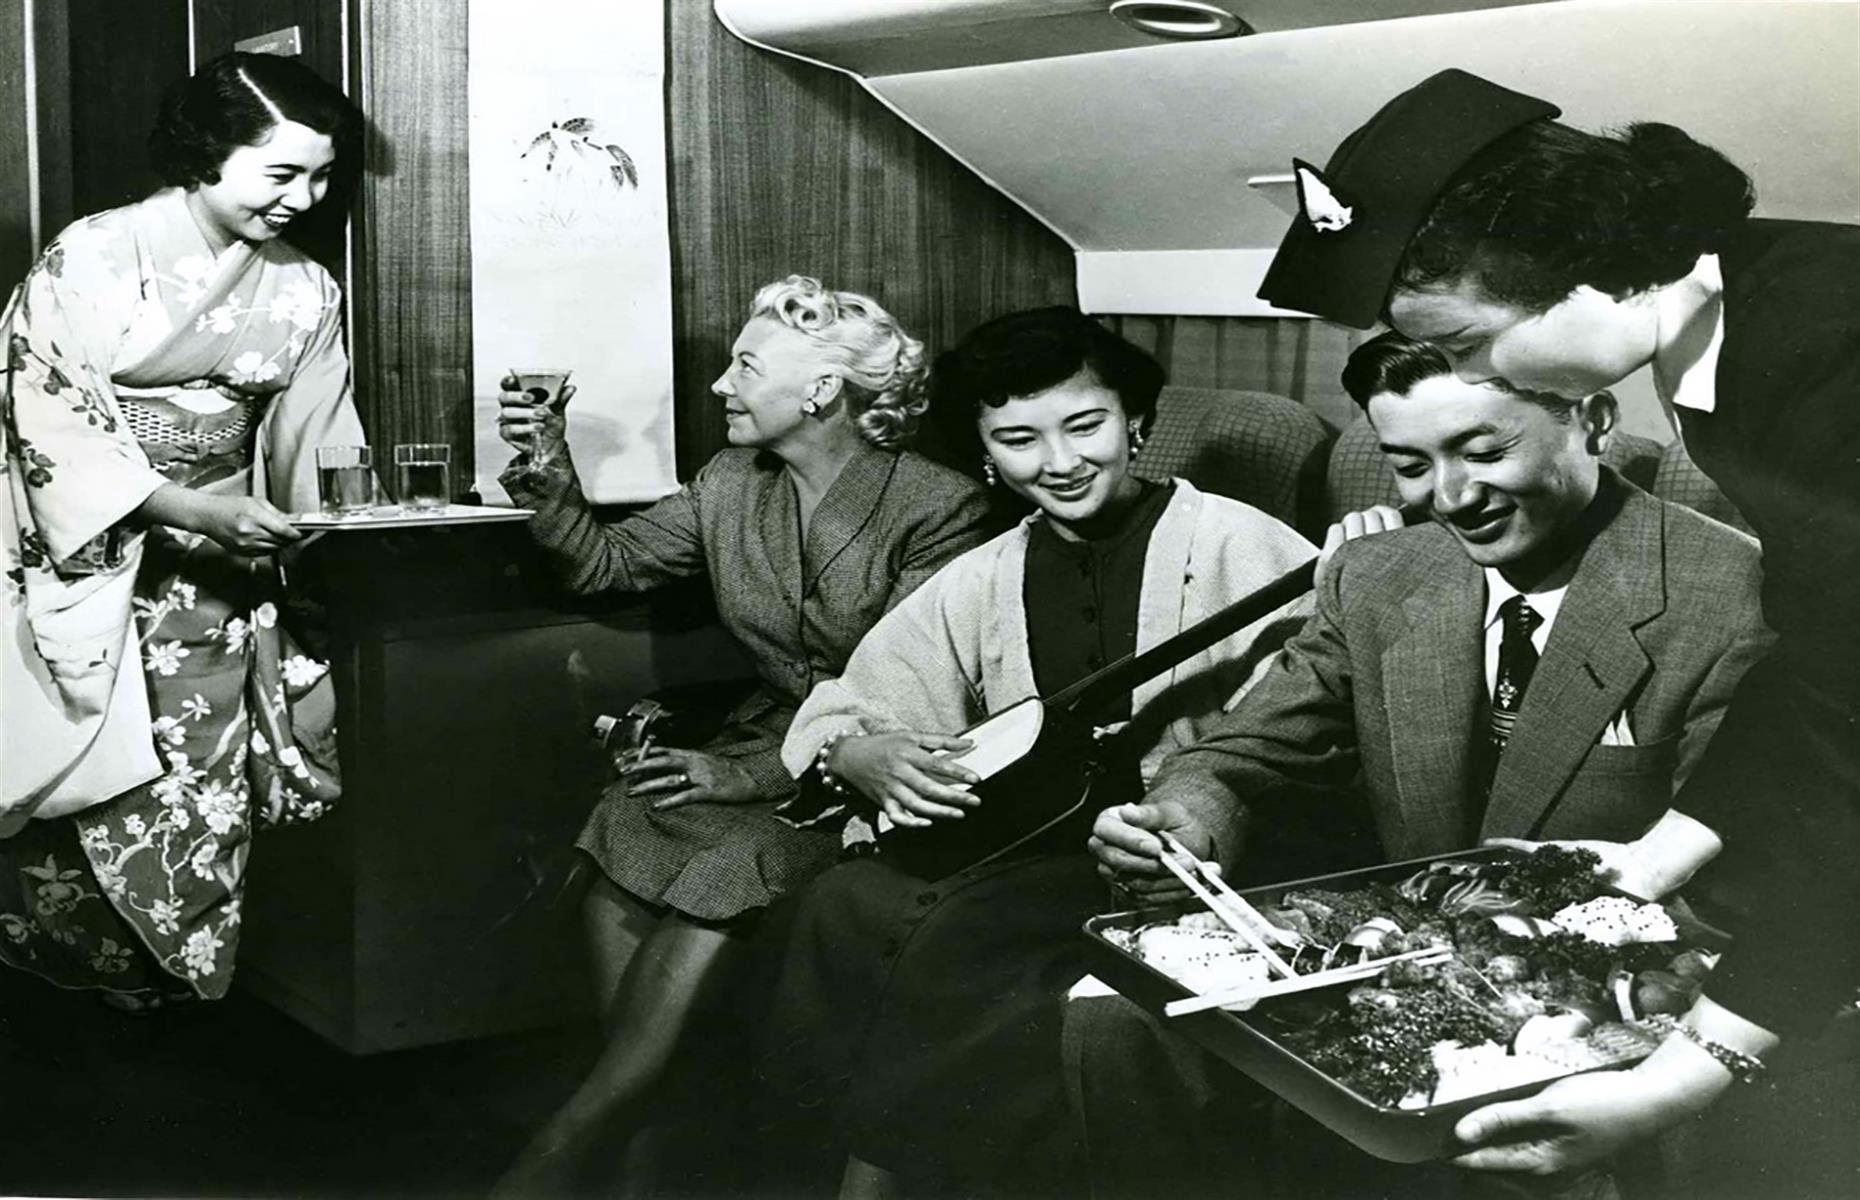 Slide 61 of 63: People refer to the 1950s as the golden age of flying, but it also meant flights were only accessible to the privileged few. The cost of flying with Qantas on the Perth to London route back in 1955 would be $23,564 (£18,144) in today's money. Now, you can make the same journey for around $900 (£700). In 1958, BOAC (the British Overseas Airways Corporation, a precursor to BA) launched the first one-way fare from London to New York which was $225 (£173) at the time, but $4,990 (£3,842) in today's money.